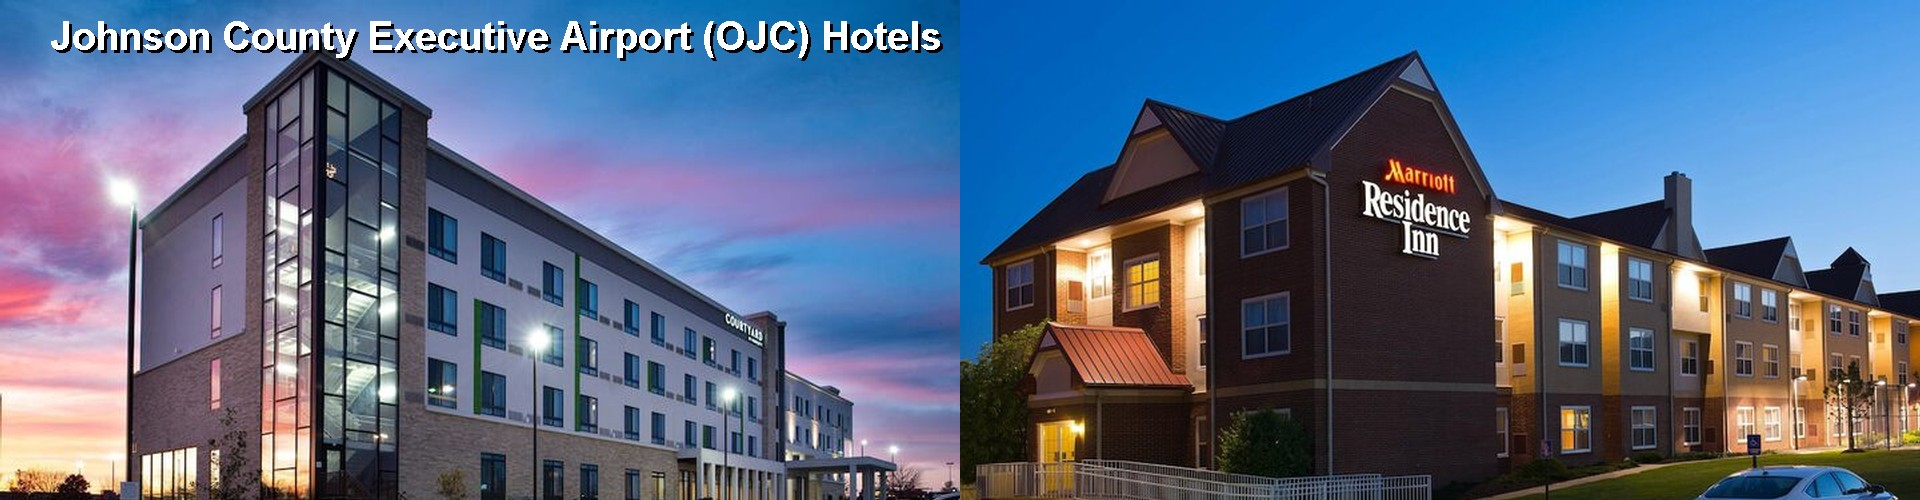 5 Best Hotels near Johnson County Executive Airport (OJC)